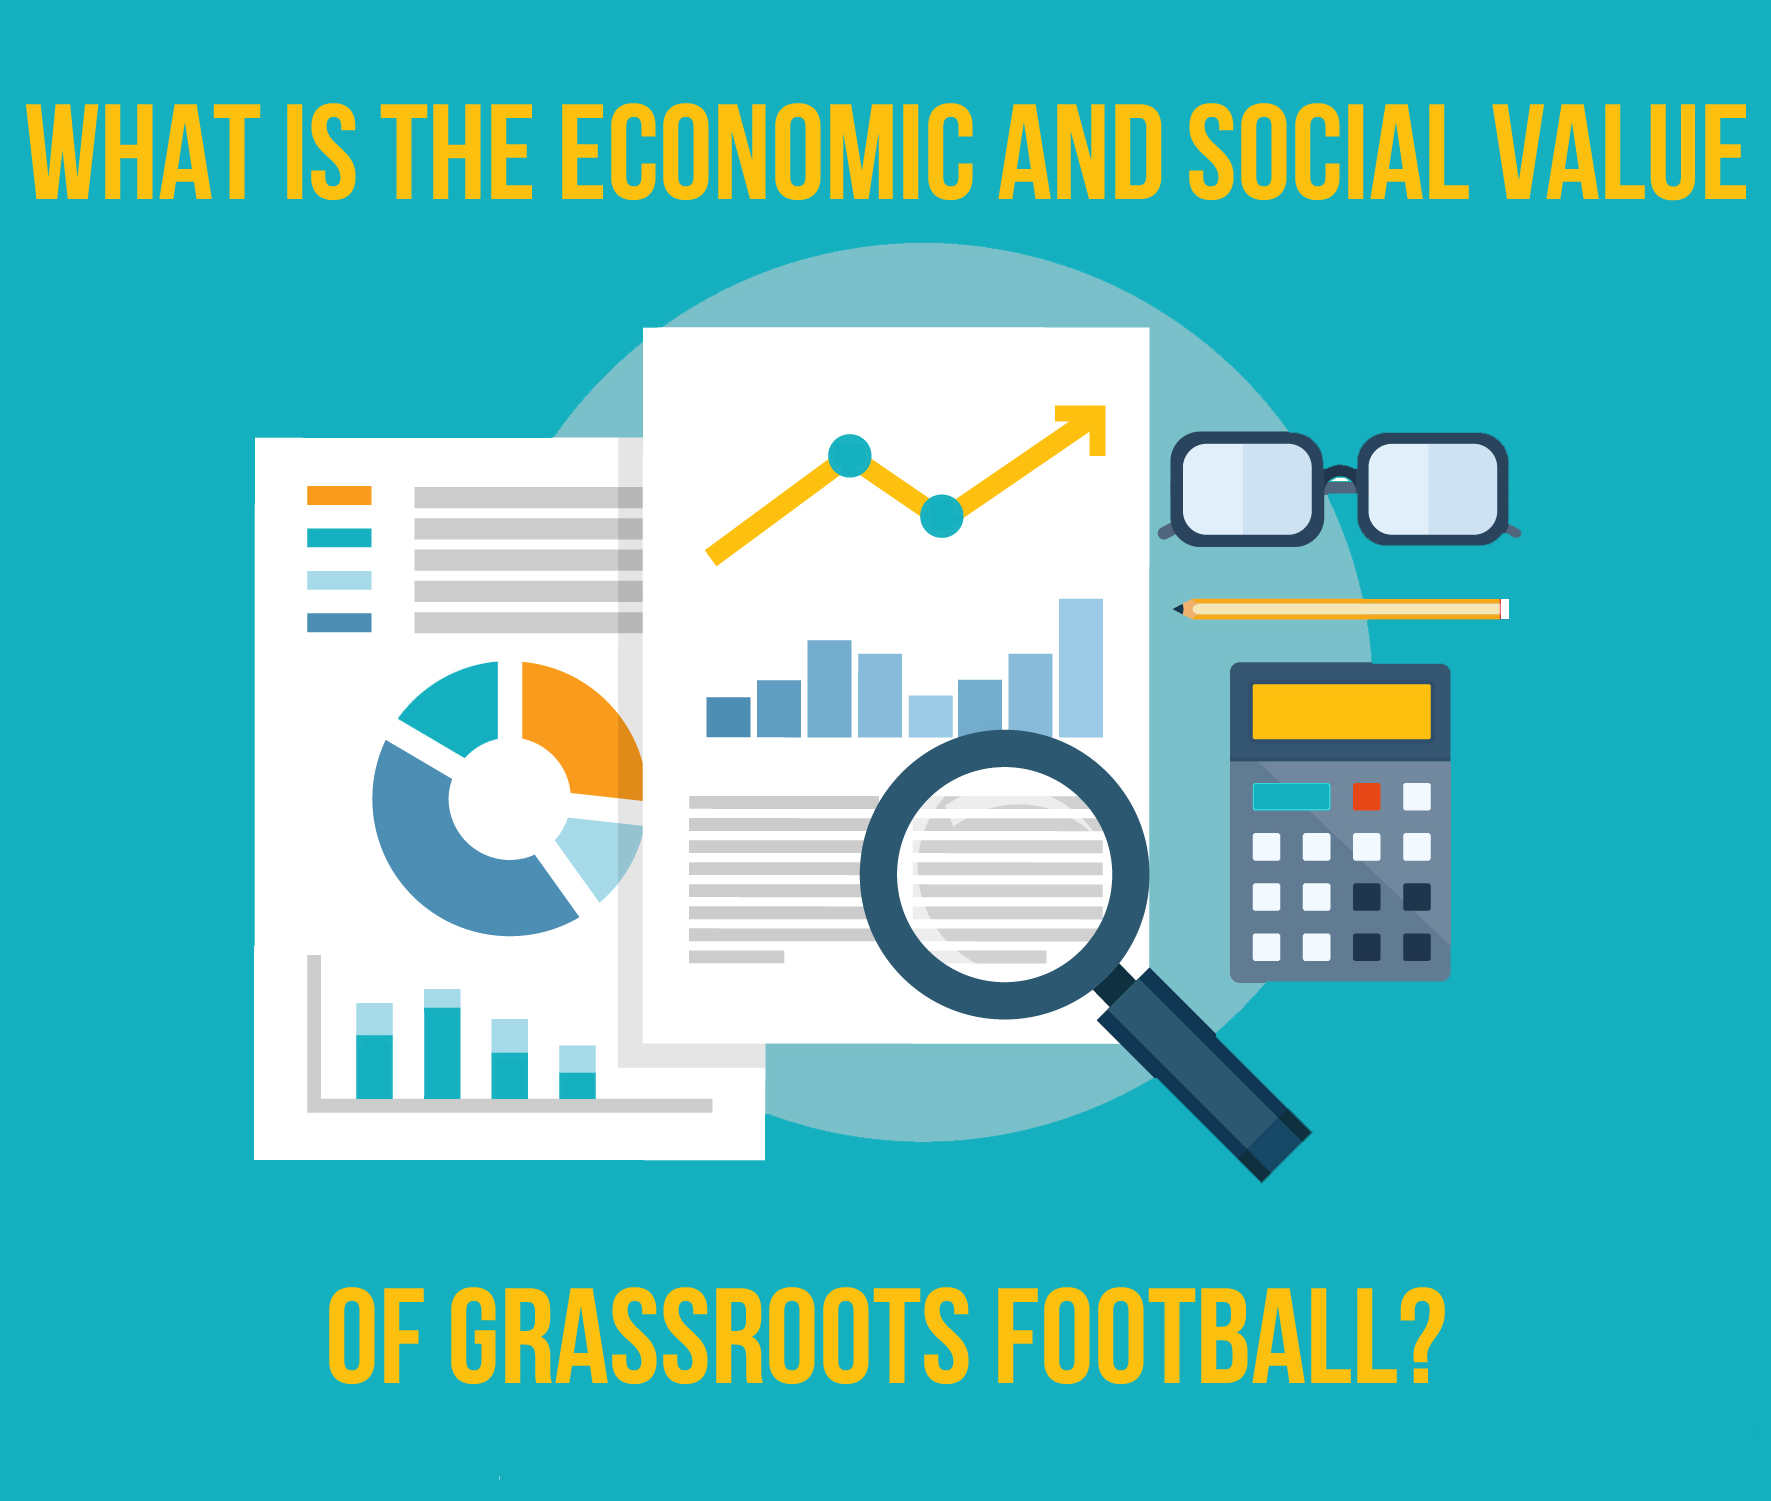 Social and economic value of grassroots football